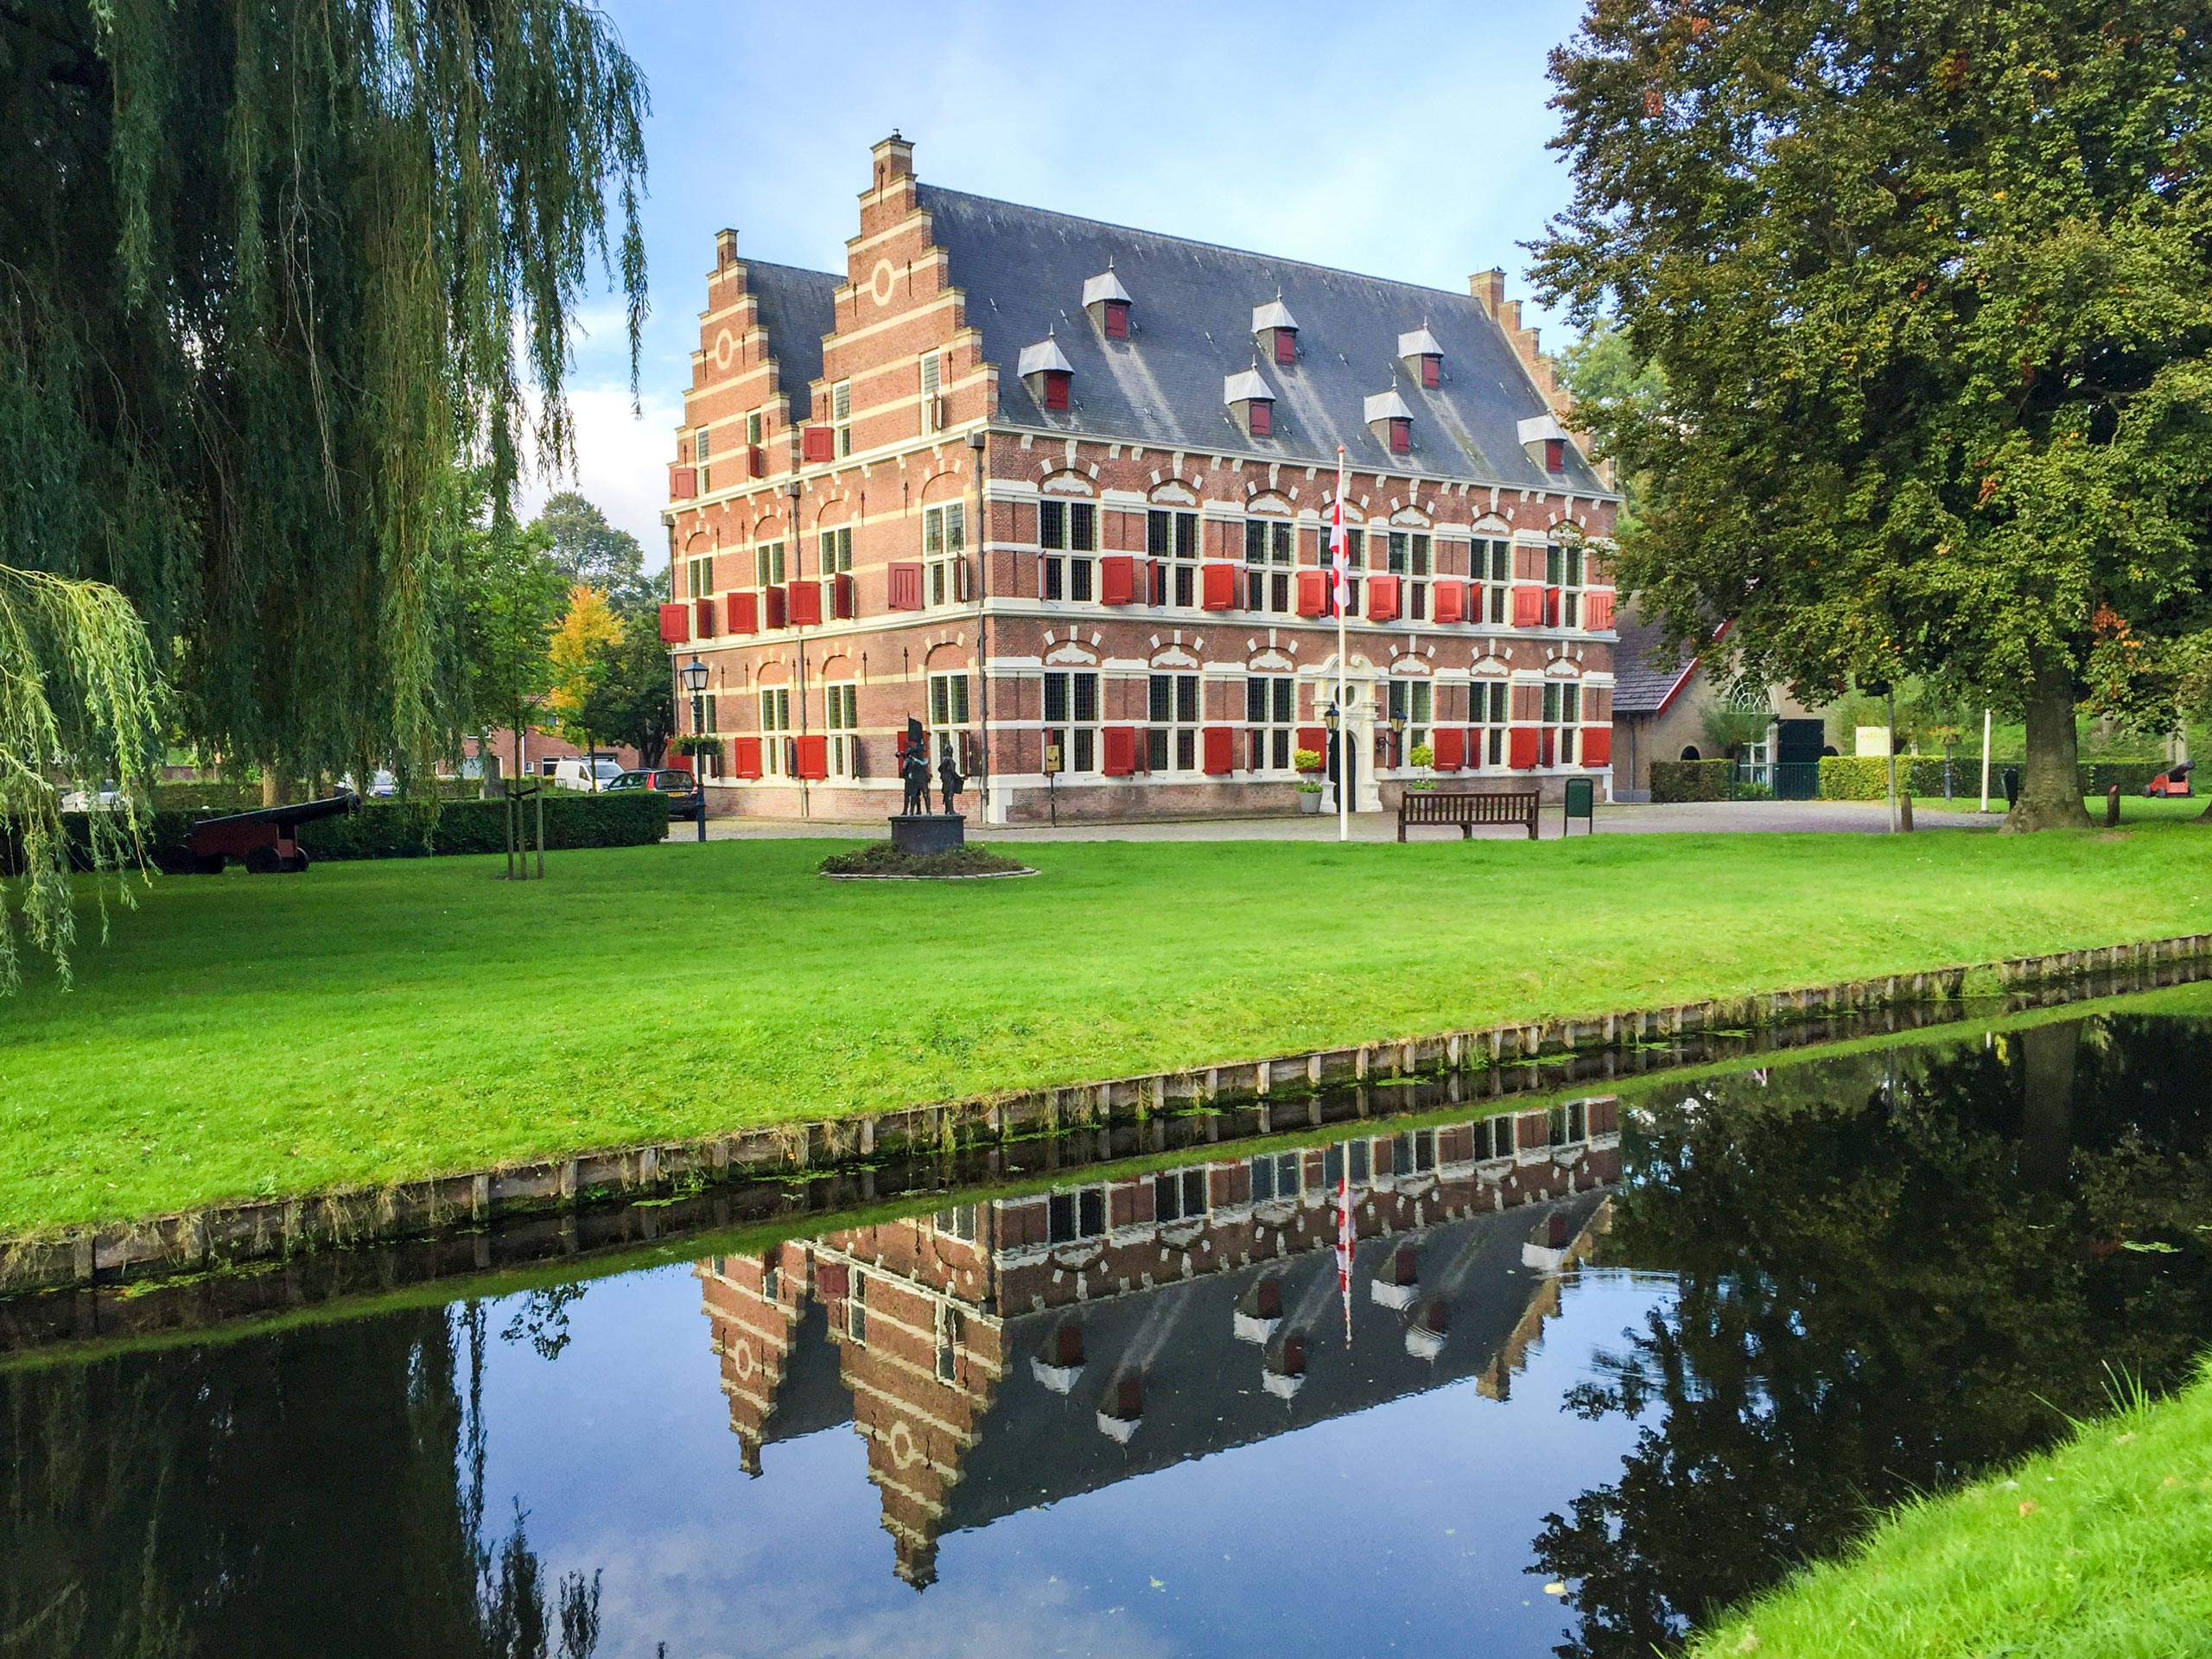 Beautiful Administrative building in Willemstad